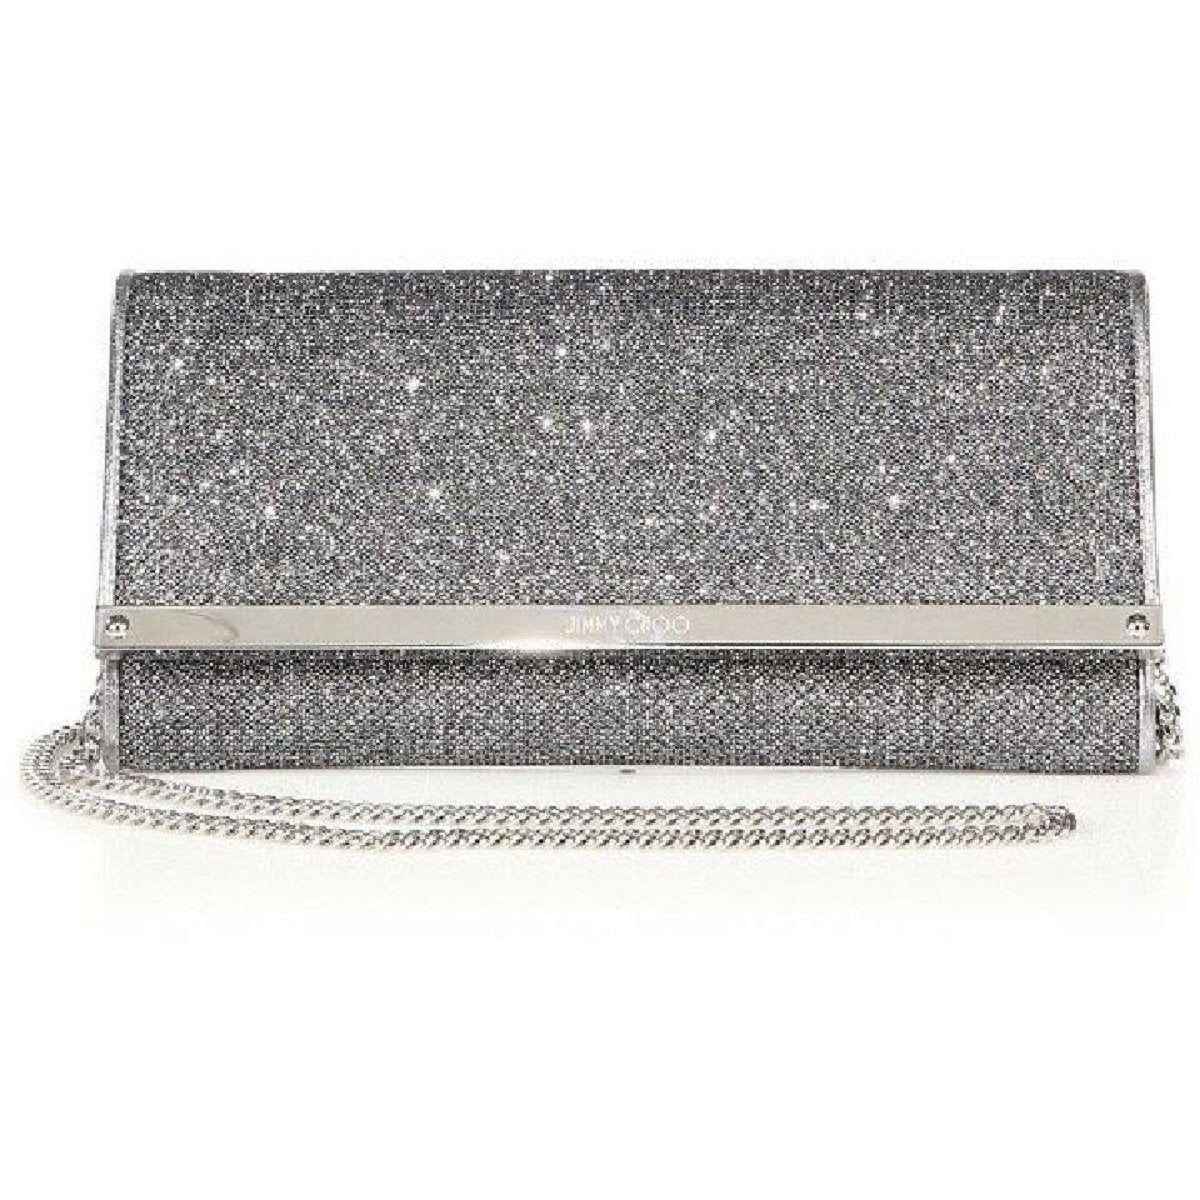 Jimmy Choo Women's Milla Glitter Metallic Anthracite Silver Clutch Bag LAG144